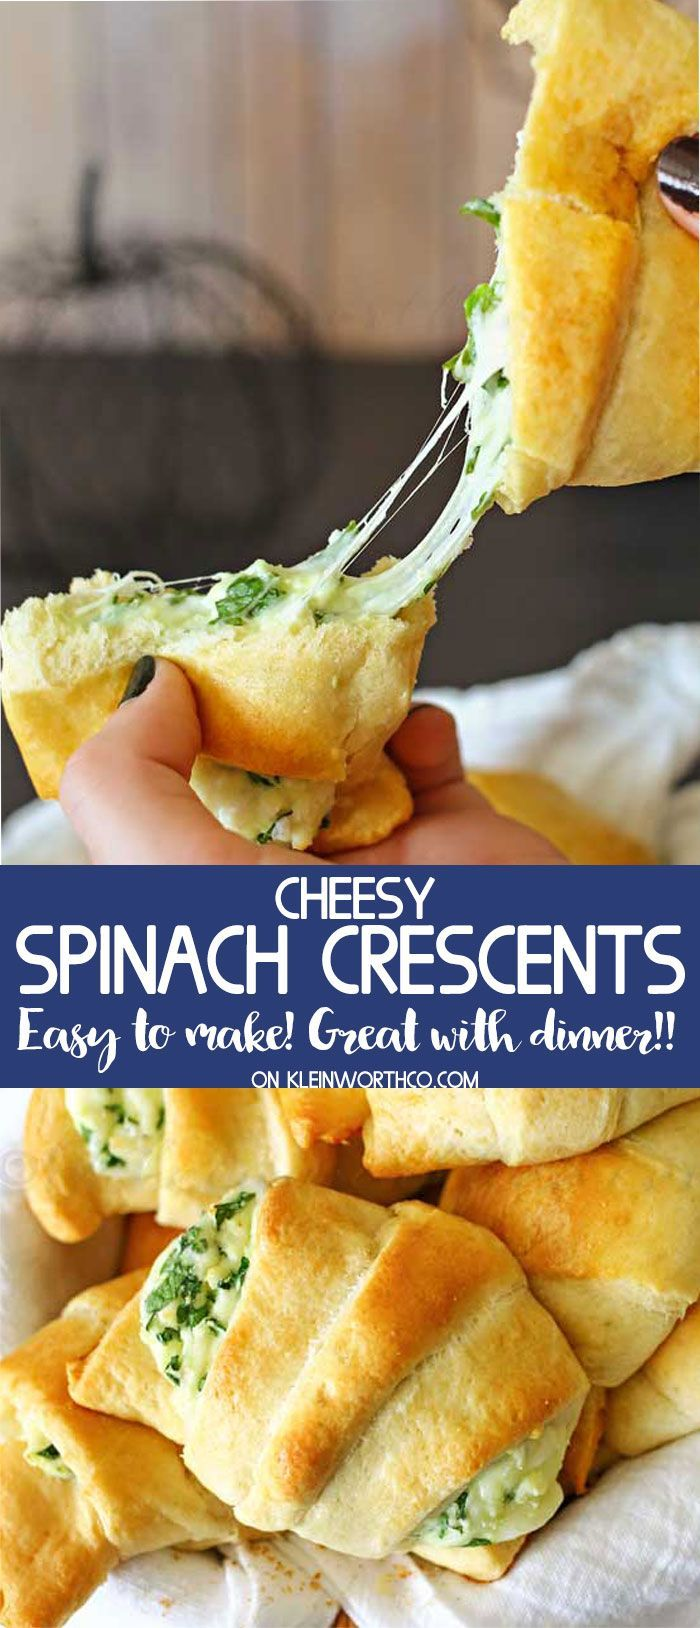 Here's what you need – crescent rolls- 2 tubes, 1 block (8oz) neufchatel cheese/cream cheese softened, 1-1/2 cups shredded mozzarella cheese, 2 cups chopped spinach & 1 egg (not pictured) & a splash of water. That's it!